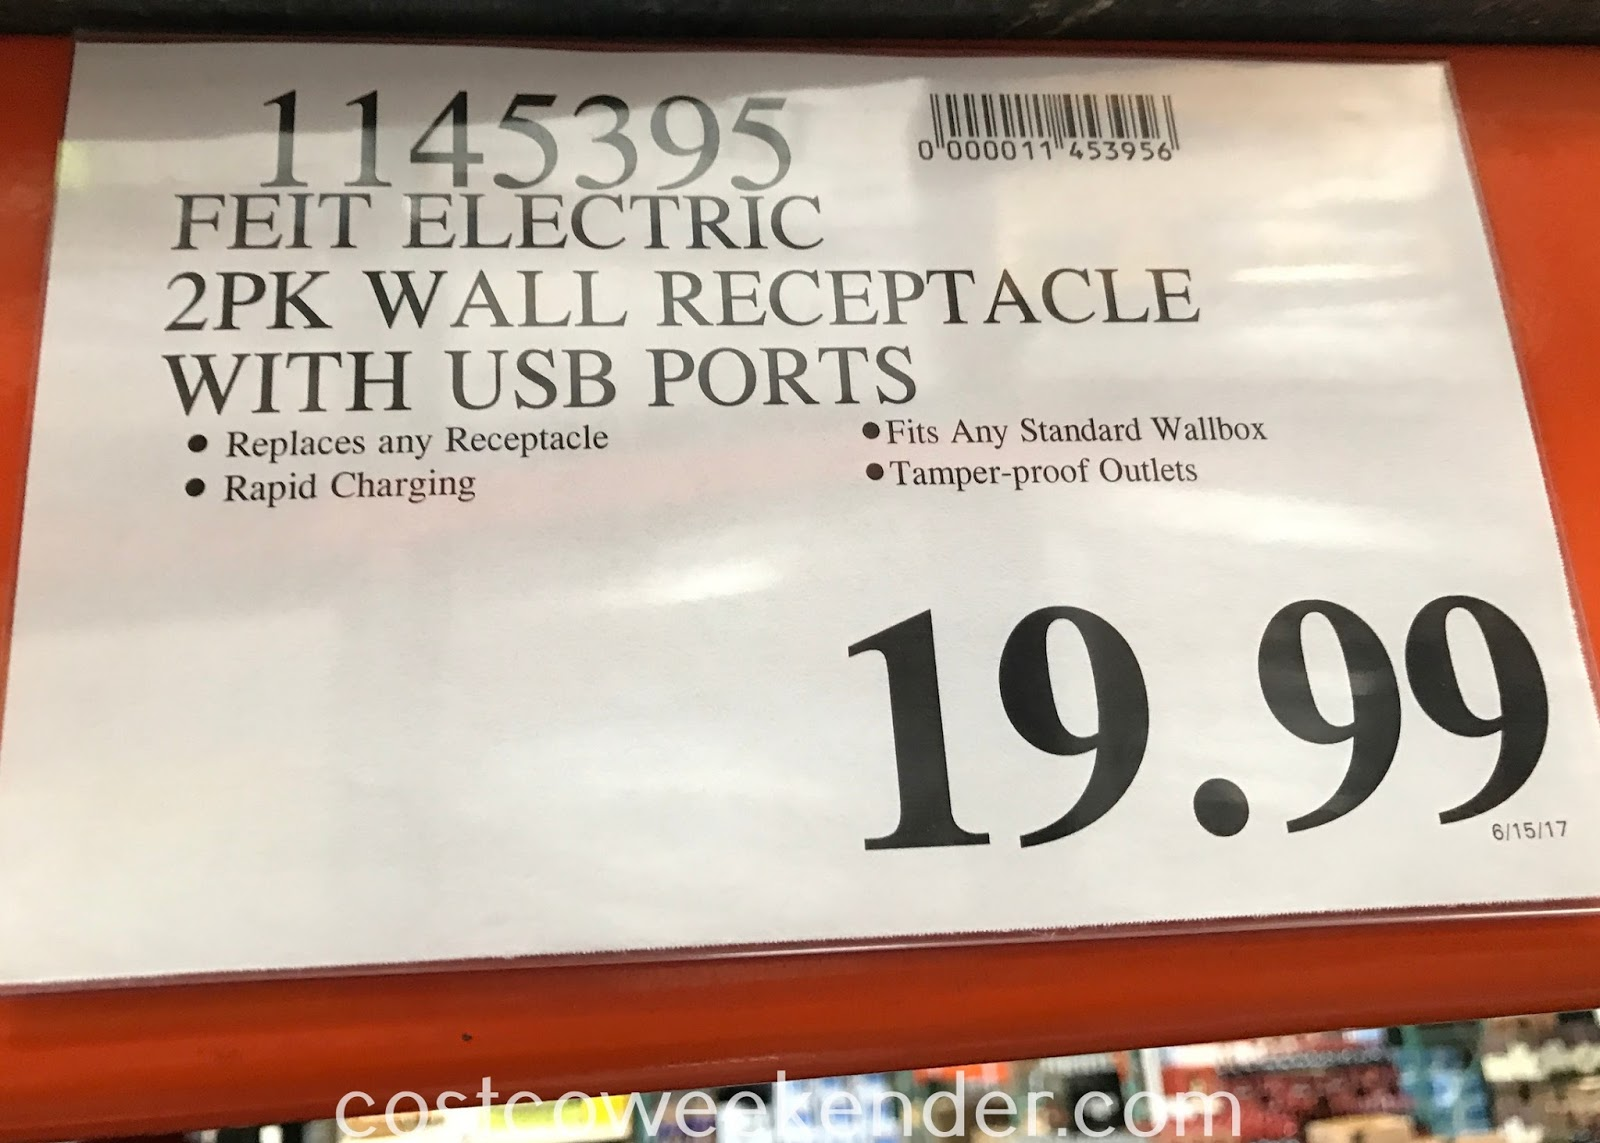 Deal for a 2 pack of Feit Electric Wall Outlets with USB Ports at Costco